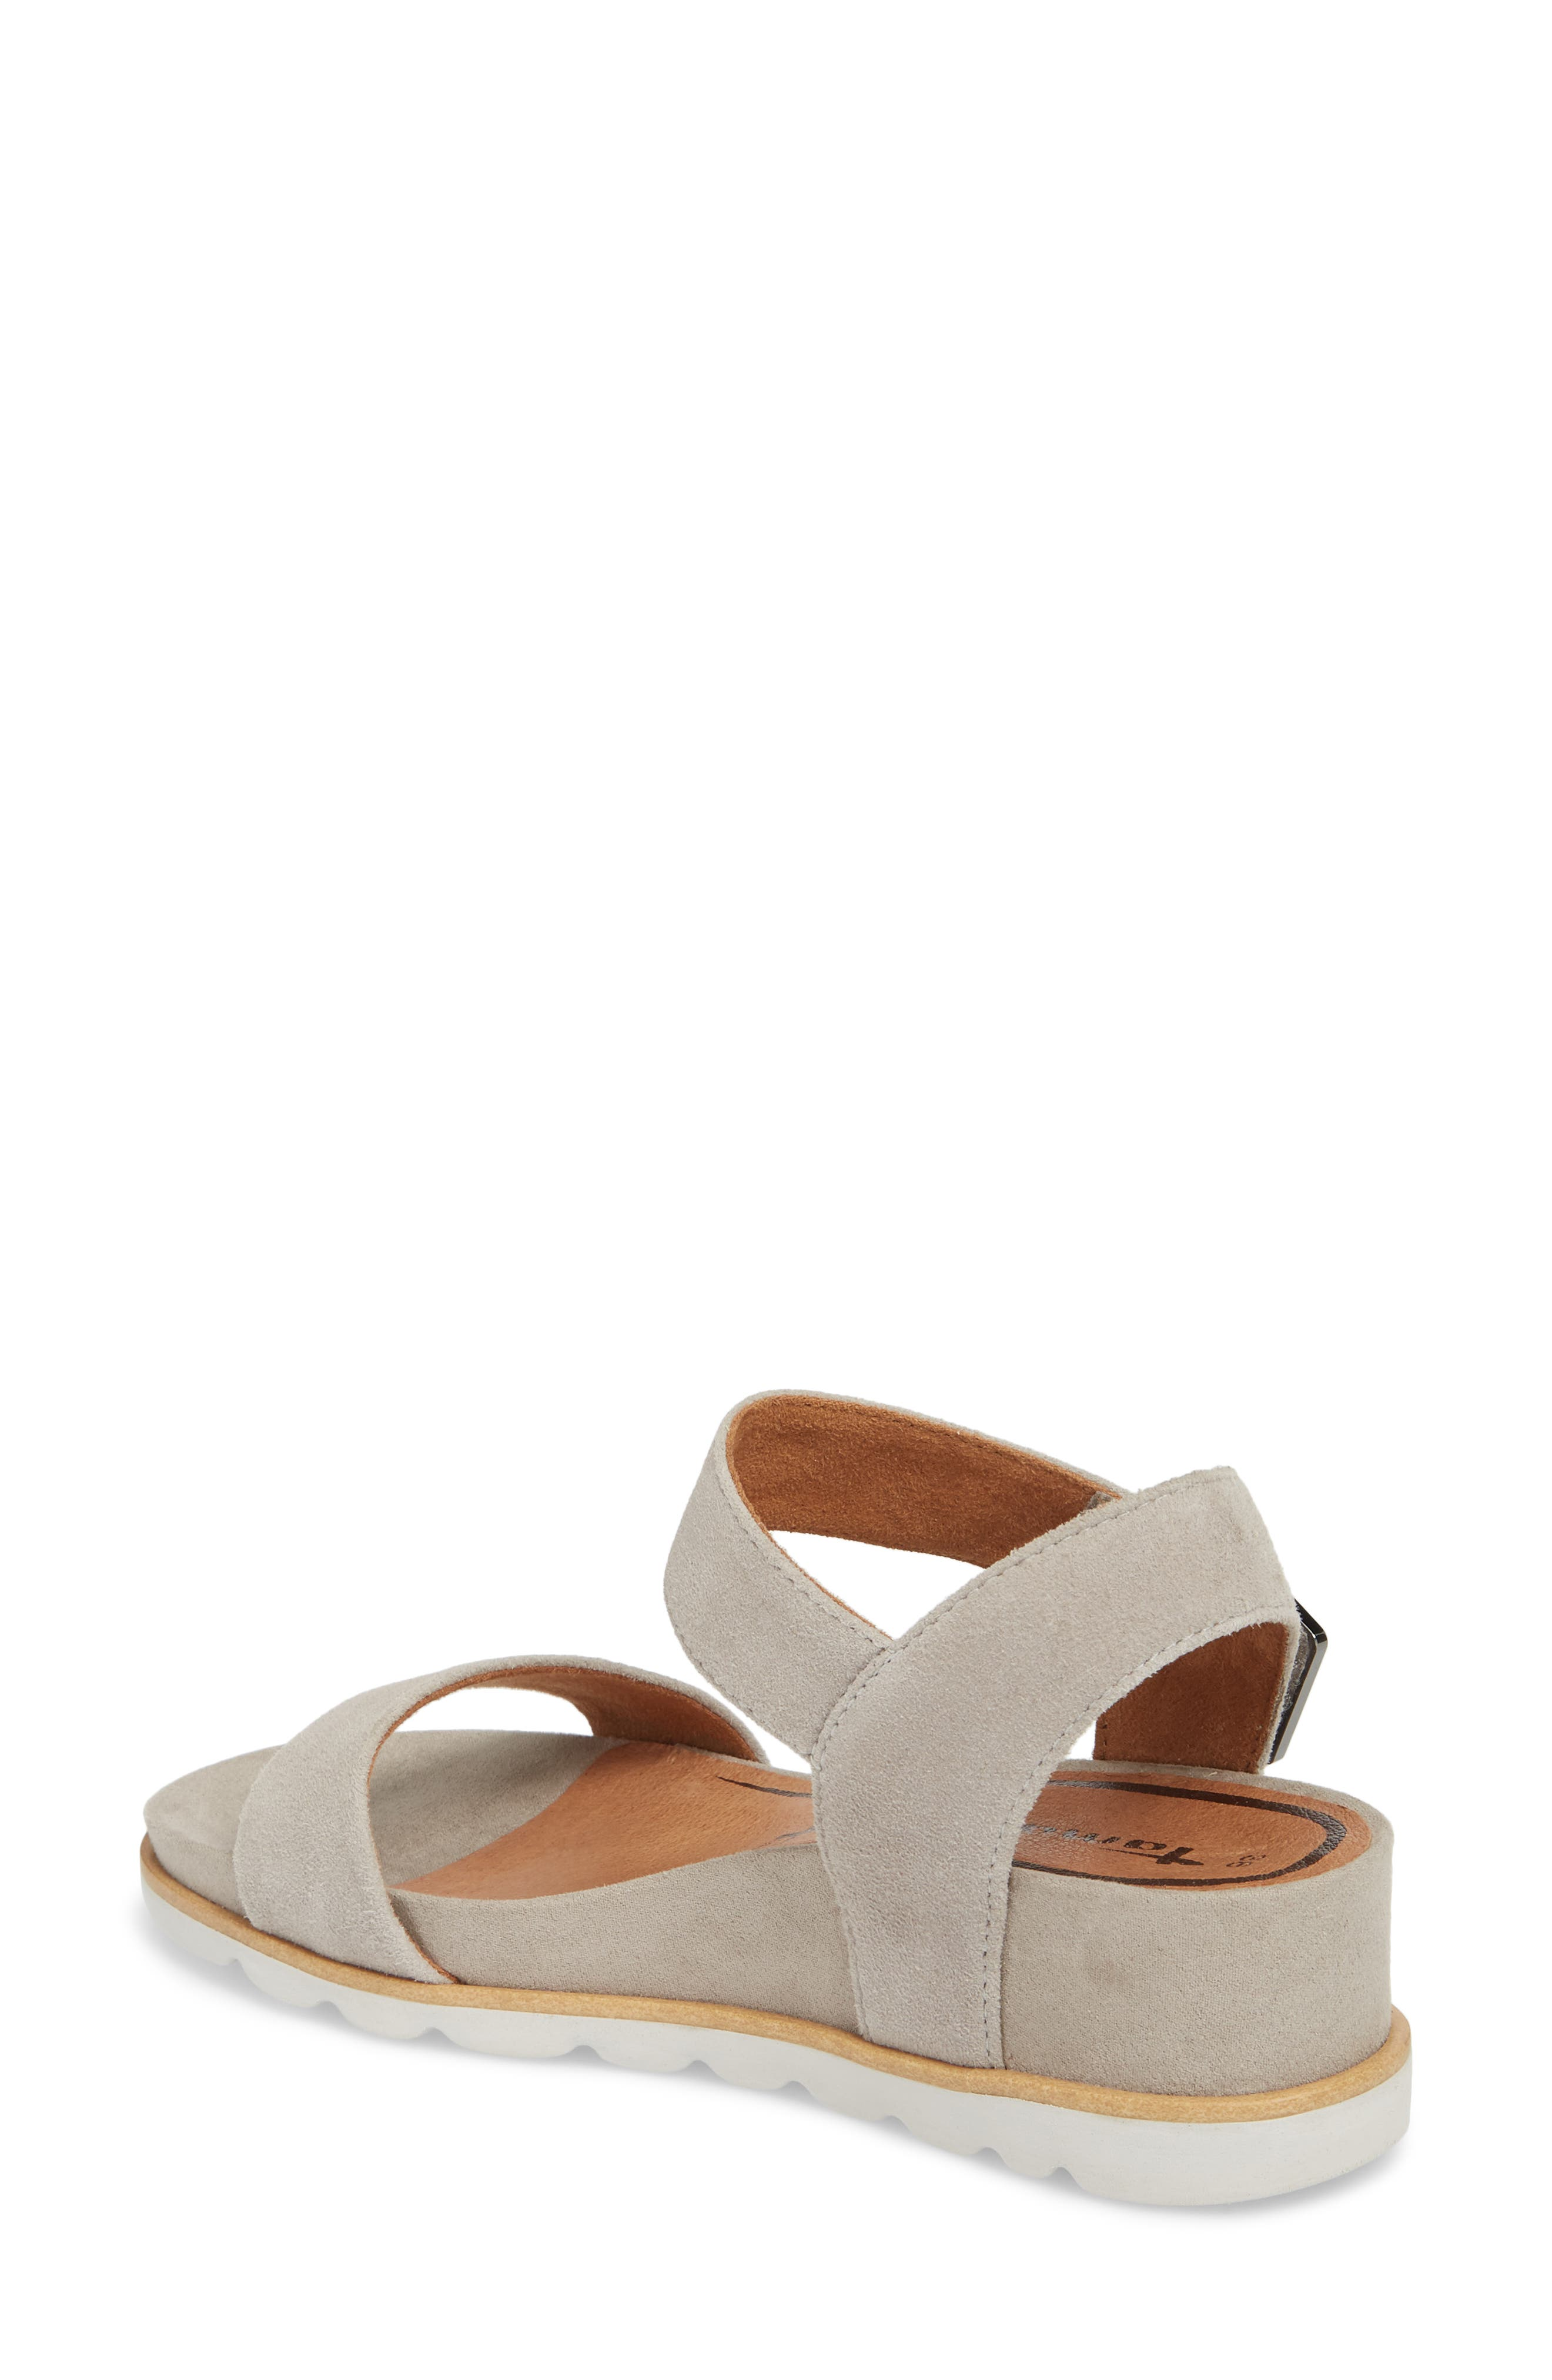 Cory Wedge Sandal,                             Alternate thumbnail 2, color,                             Cloud Suede